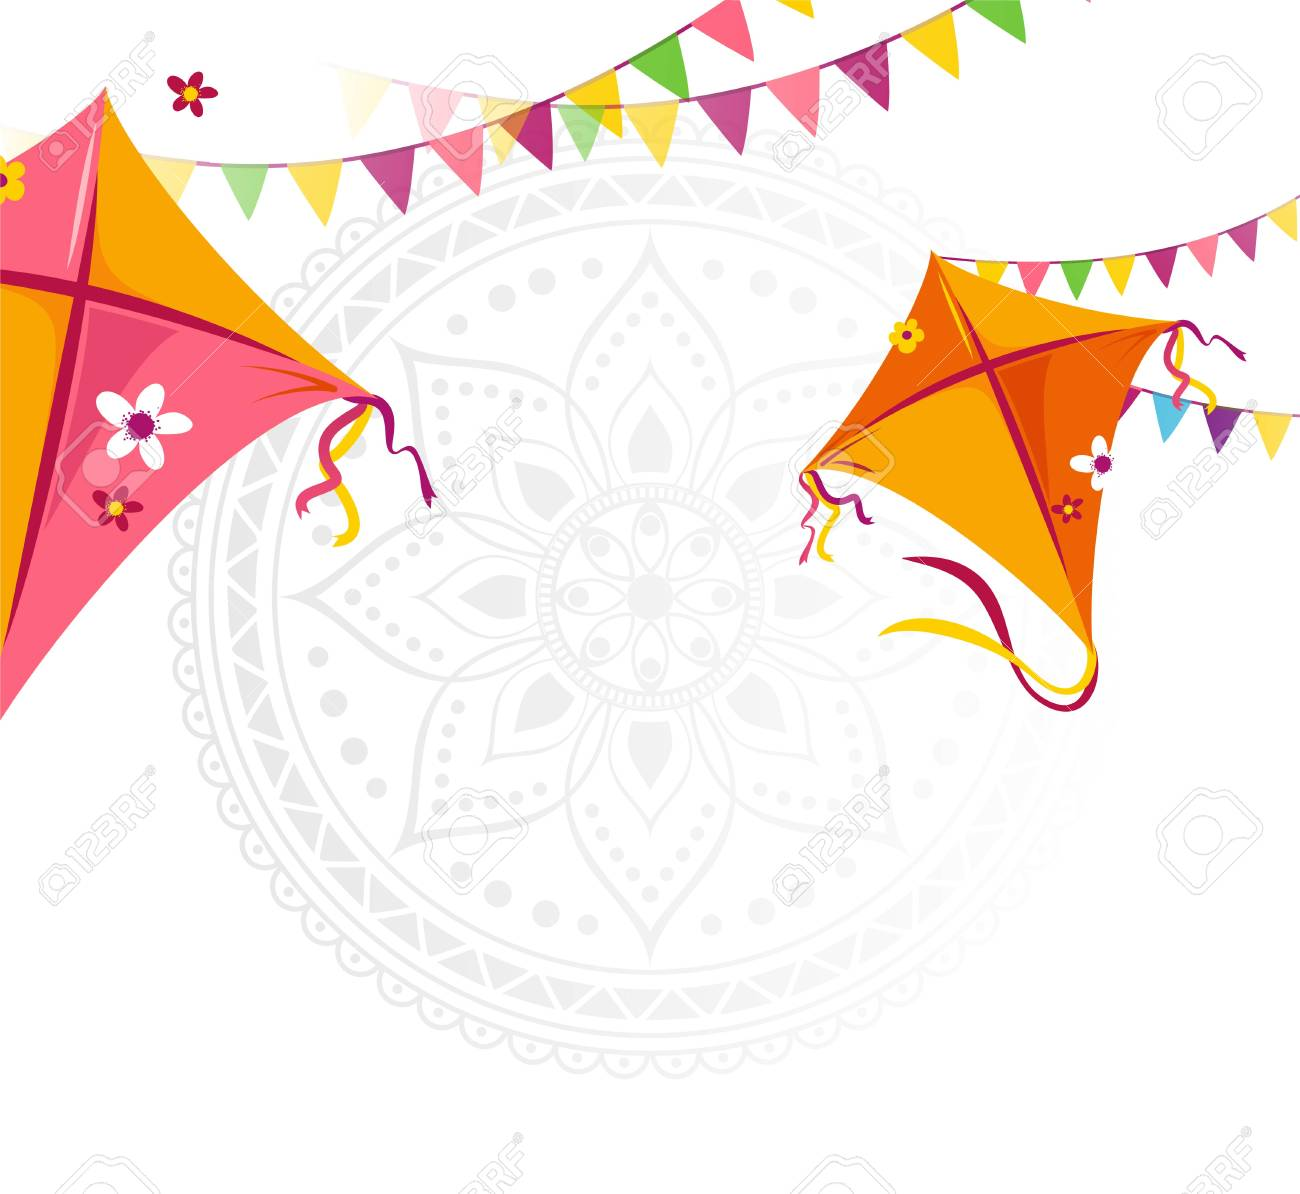 Happy Makar Sankranti Holiday Background With Kites And Bunting 1300x1194